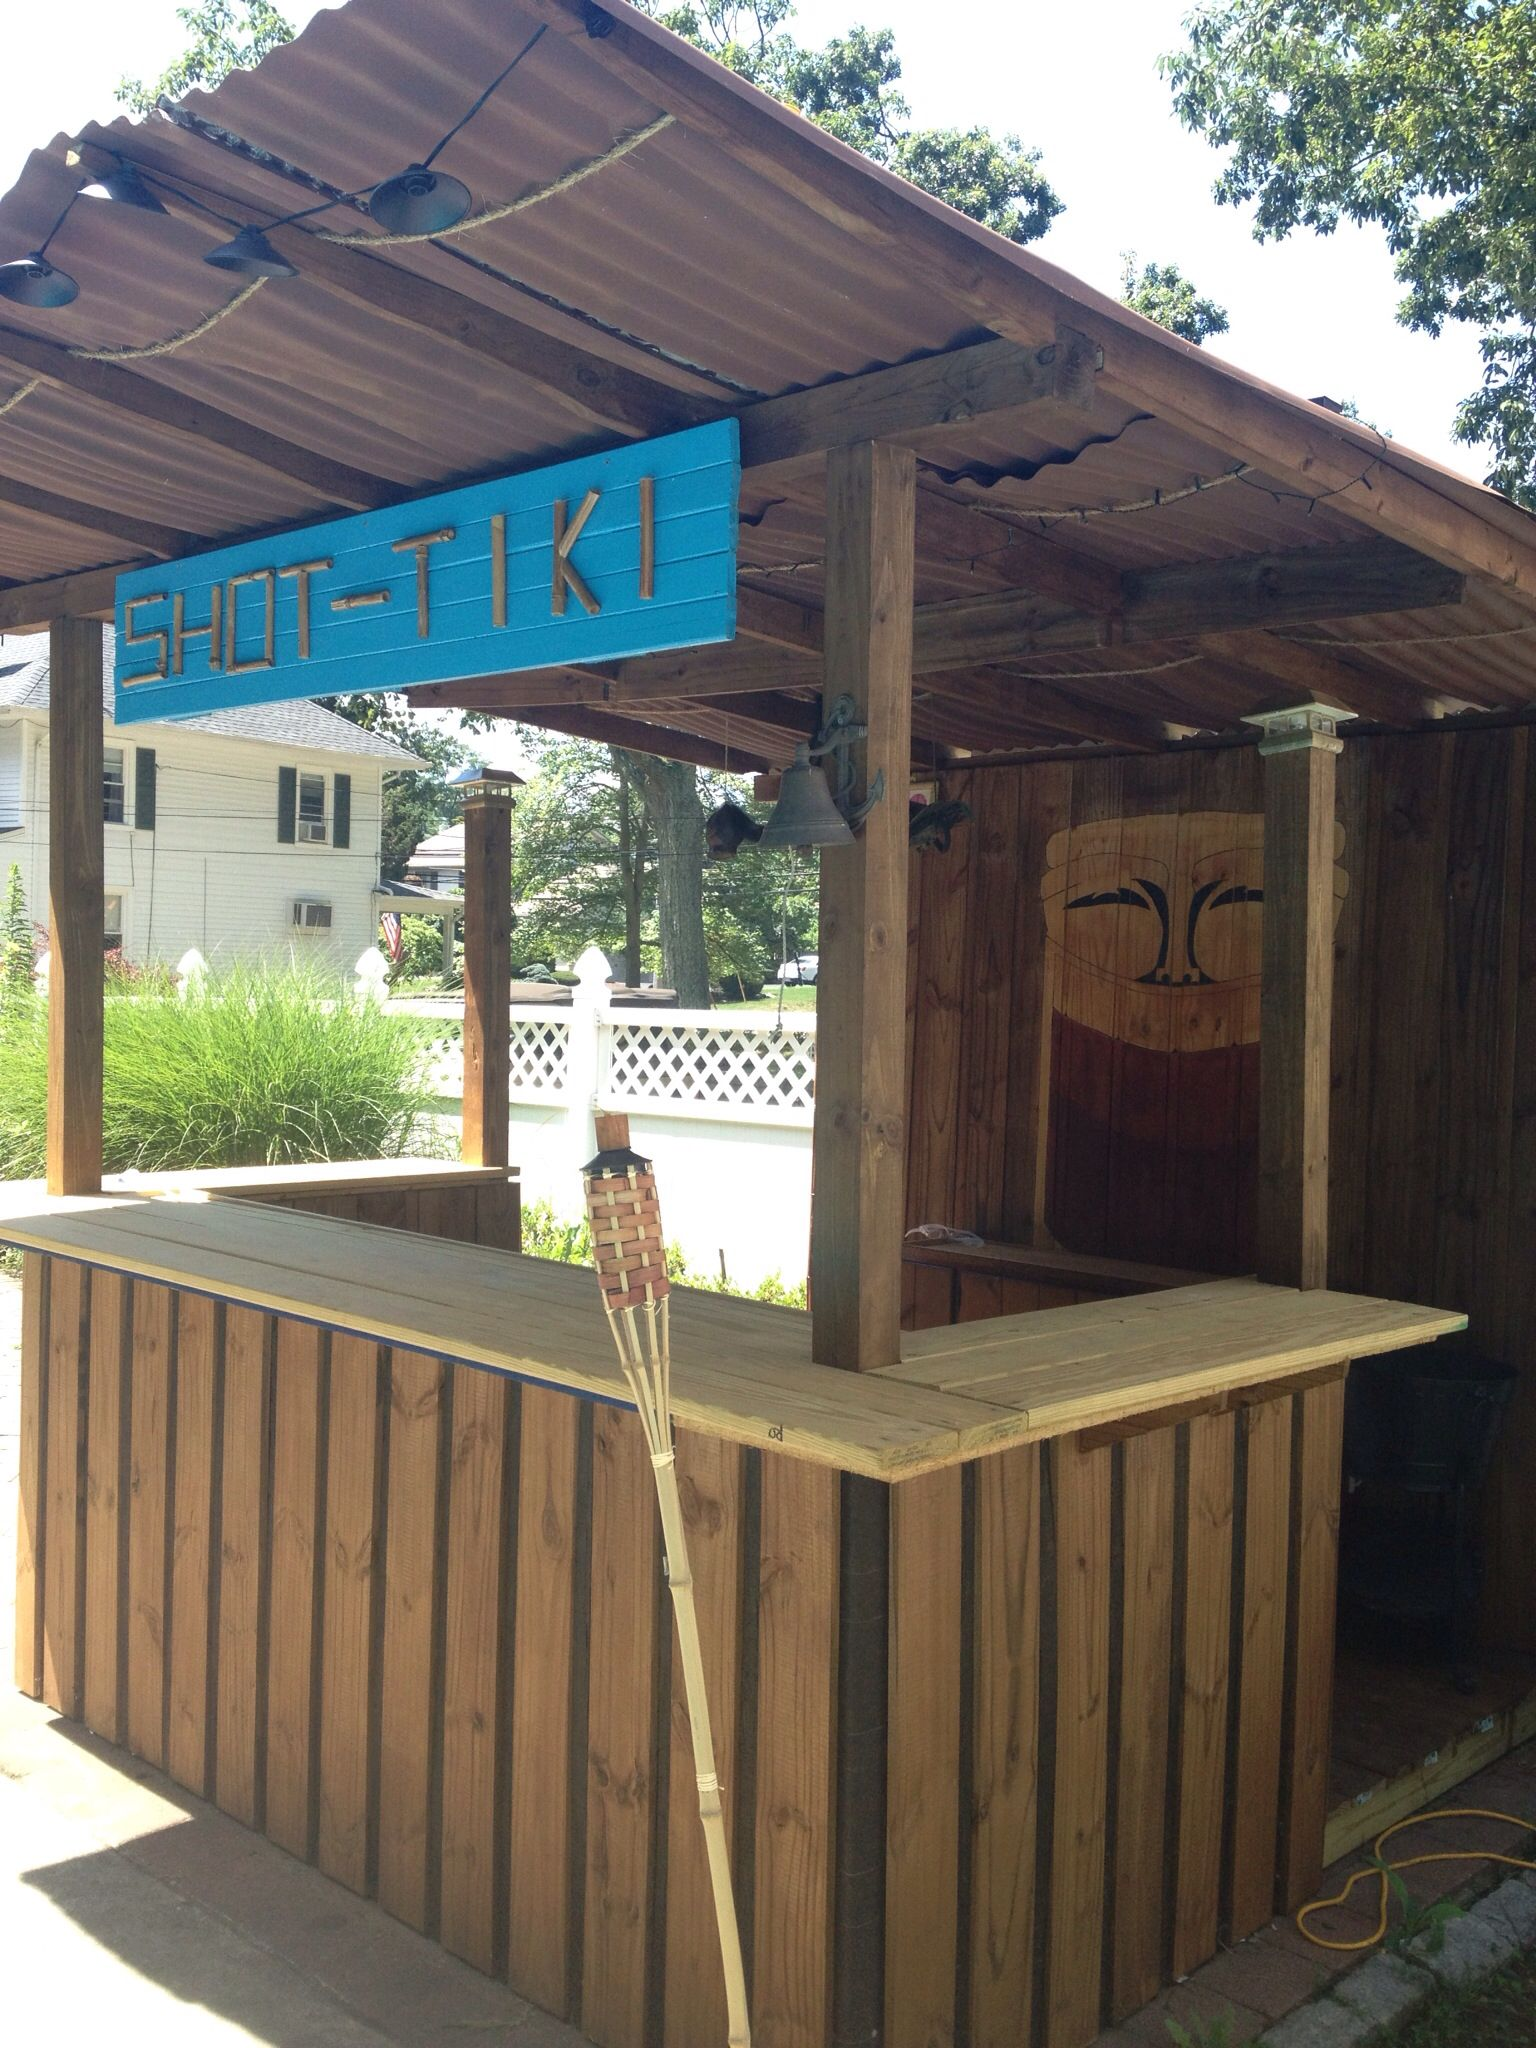 diy tiki bar my hubby built things i want in my backyard